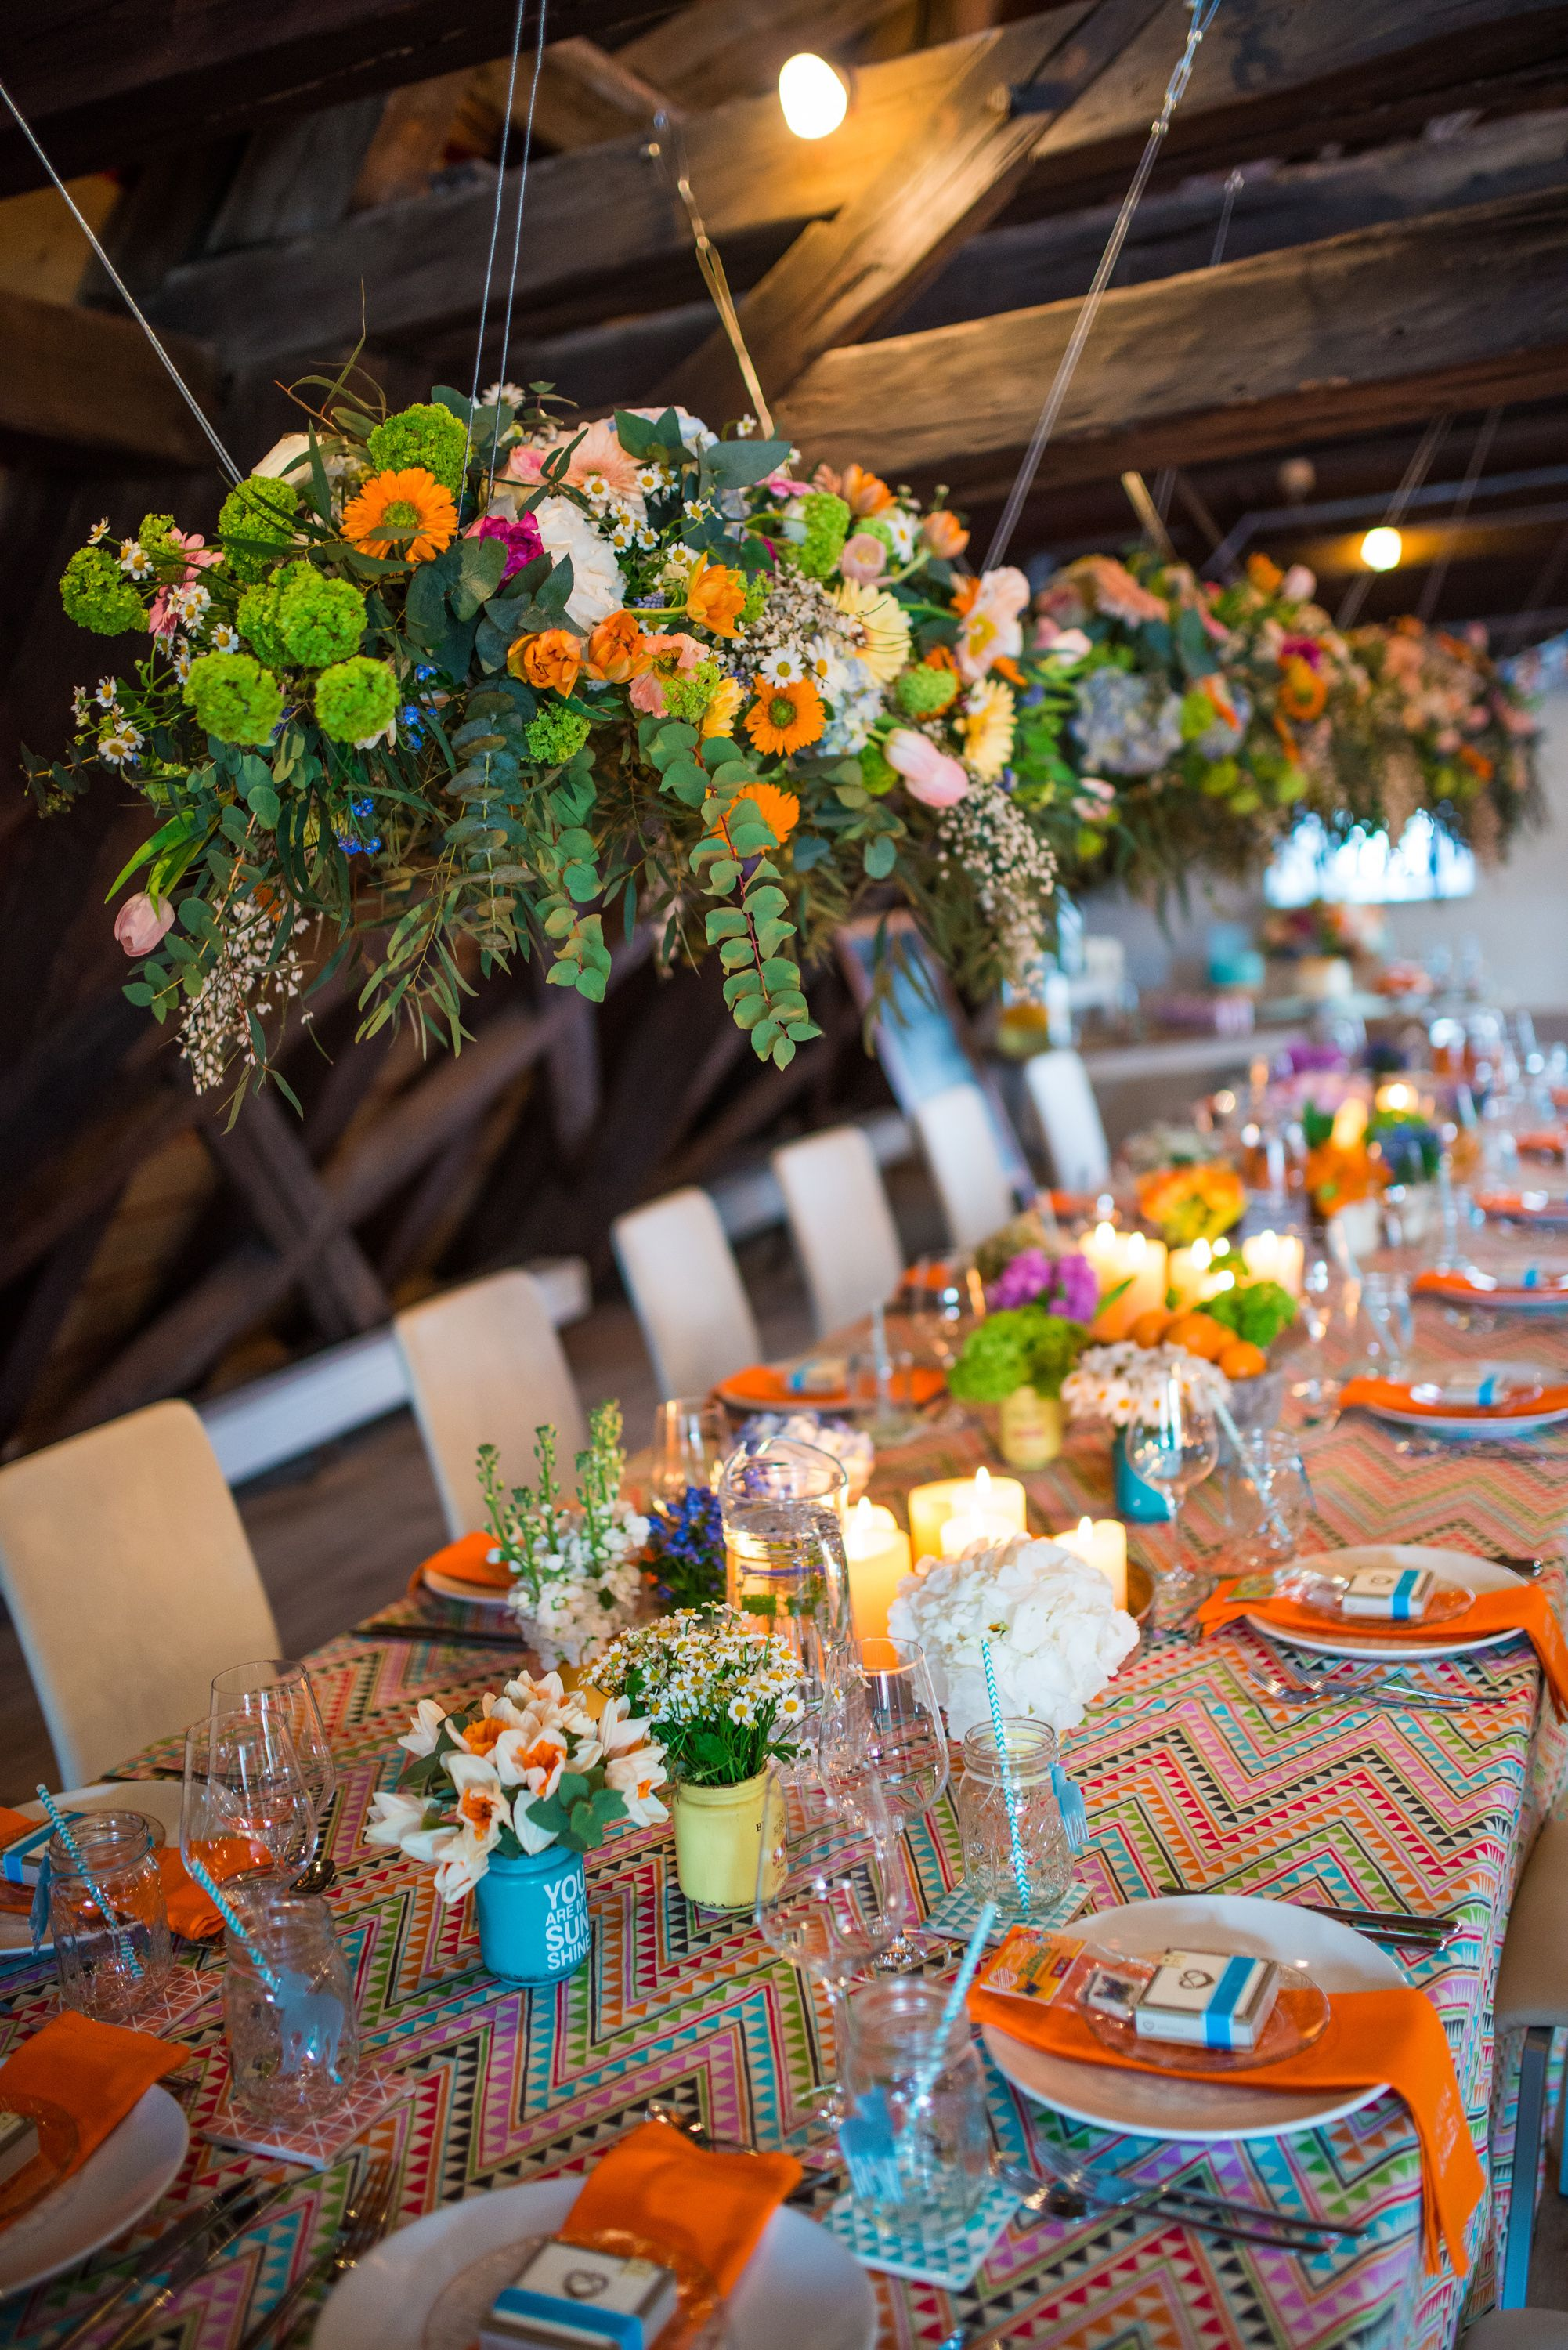 High Quality Real Wedding: Casual Hippie, Table Decoration Multicolored, Floral  Arrangement Hanging Www.